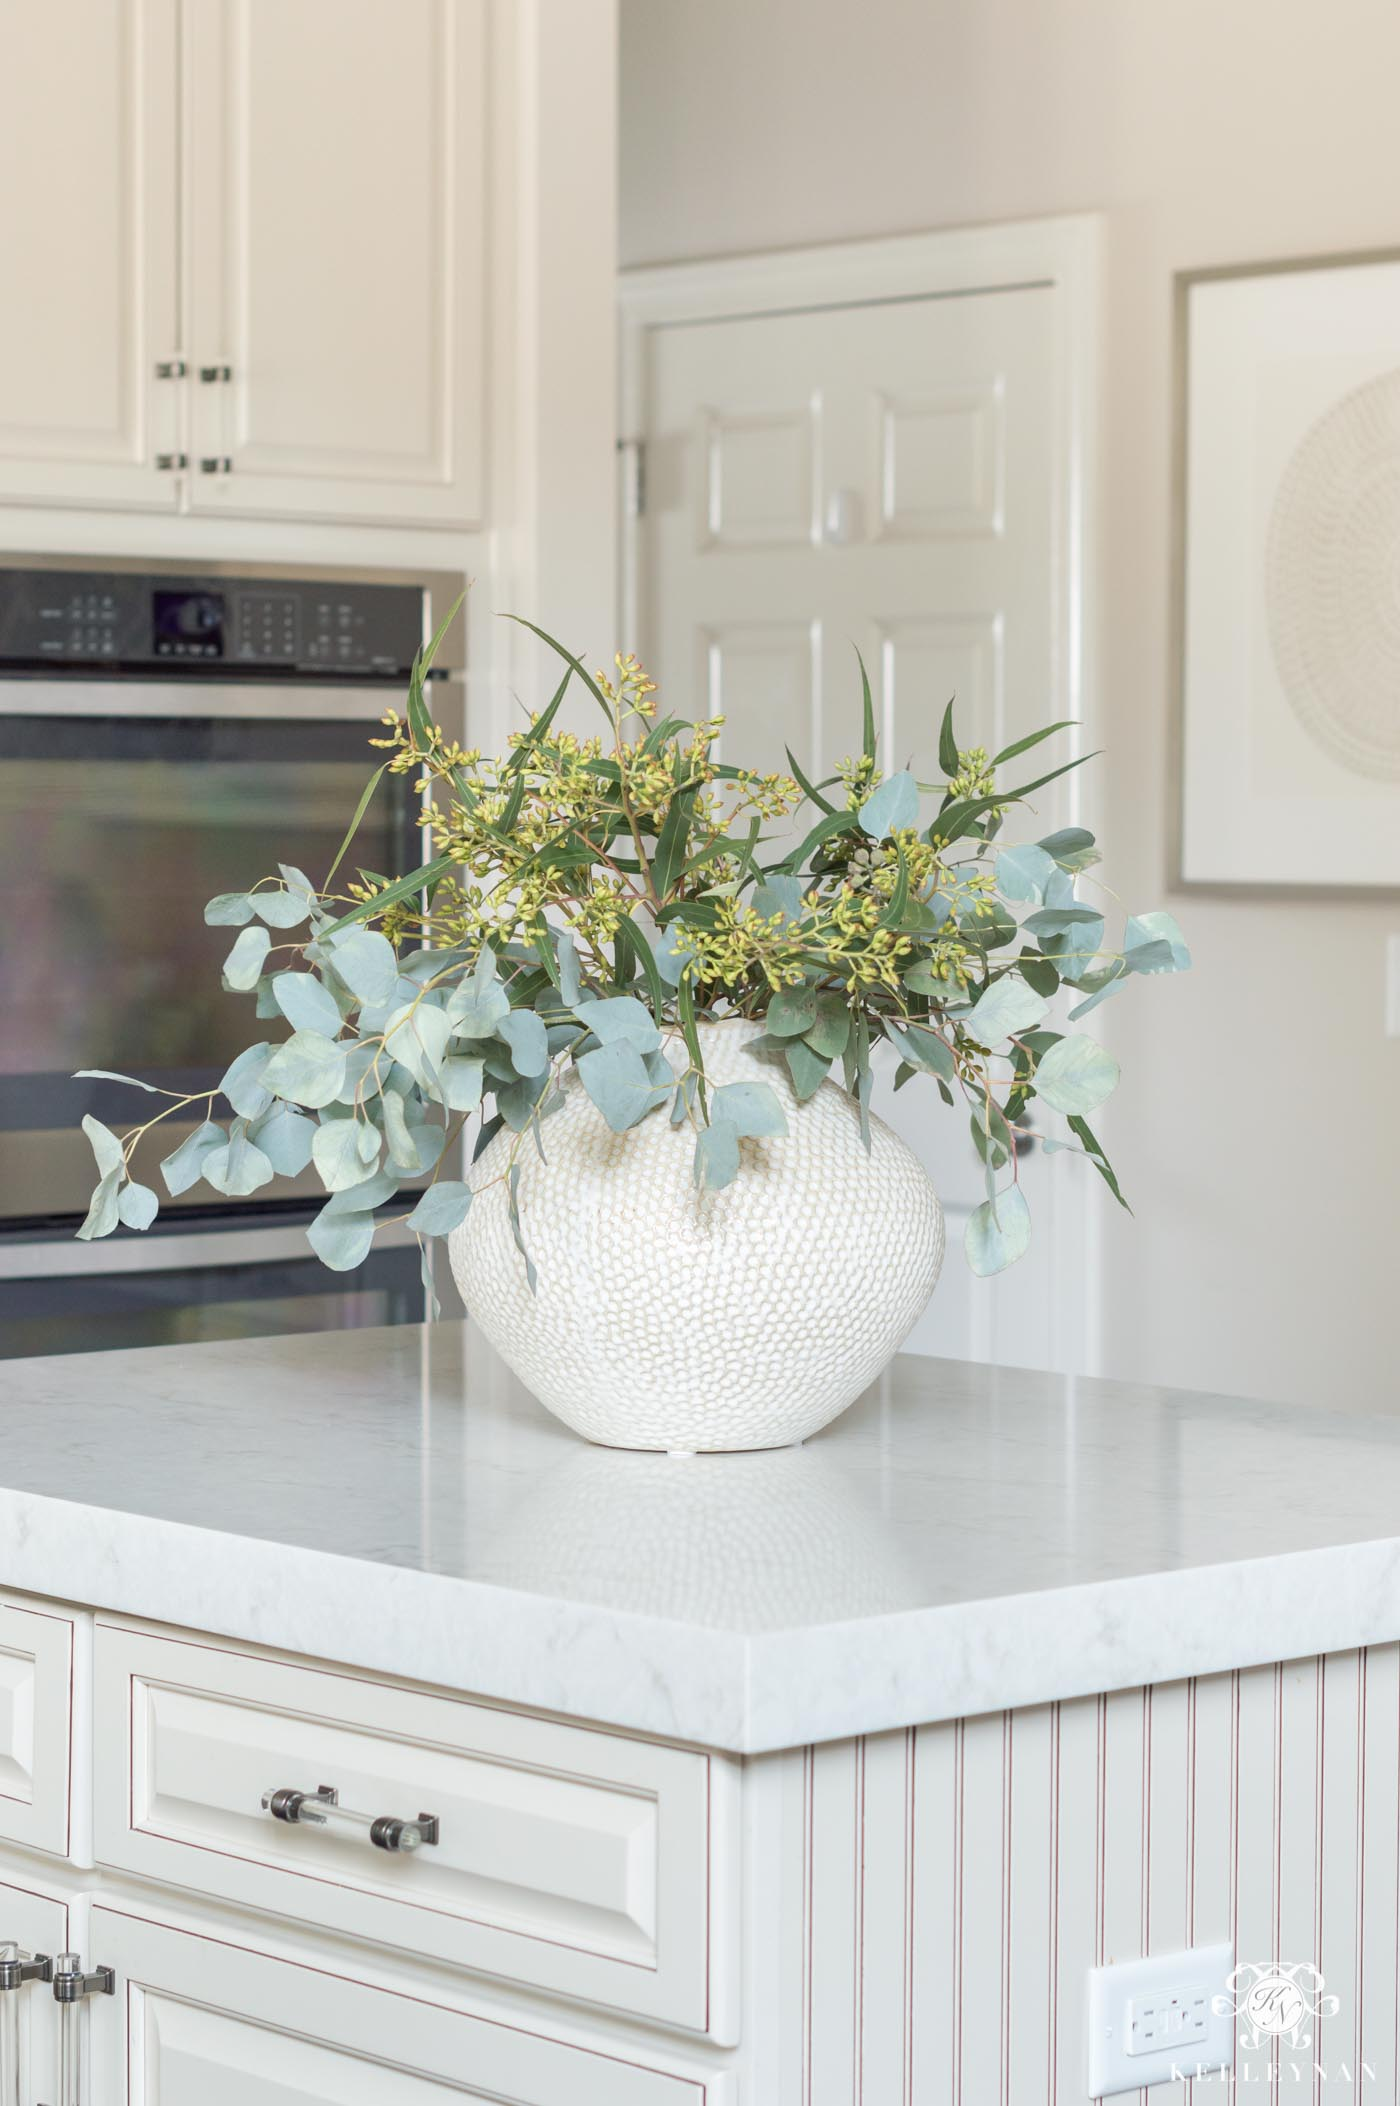 Kitchen Island Decor 6 Easy Styling Tips Kelley Nan